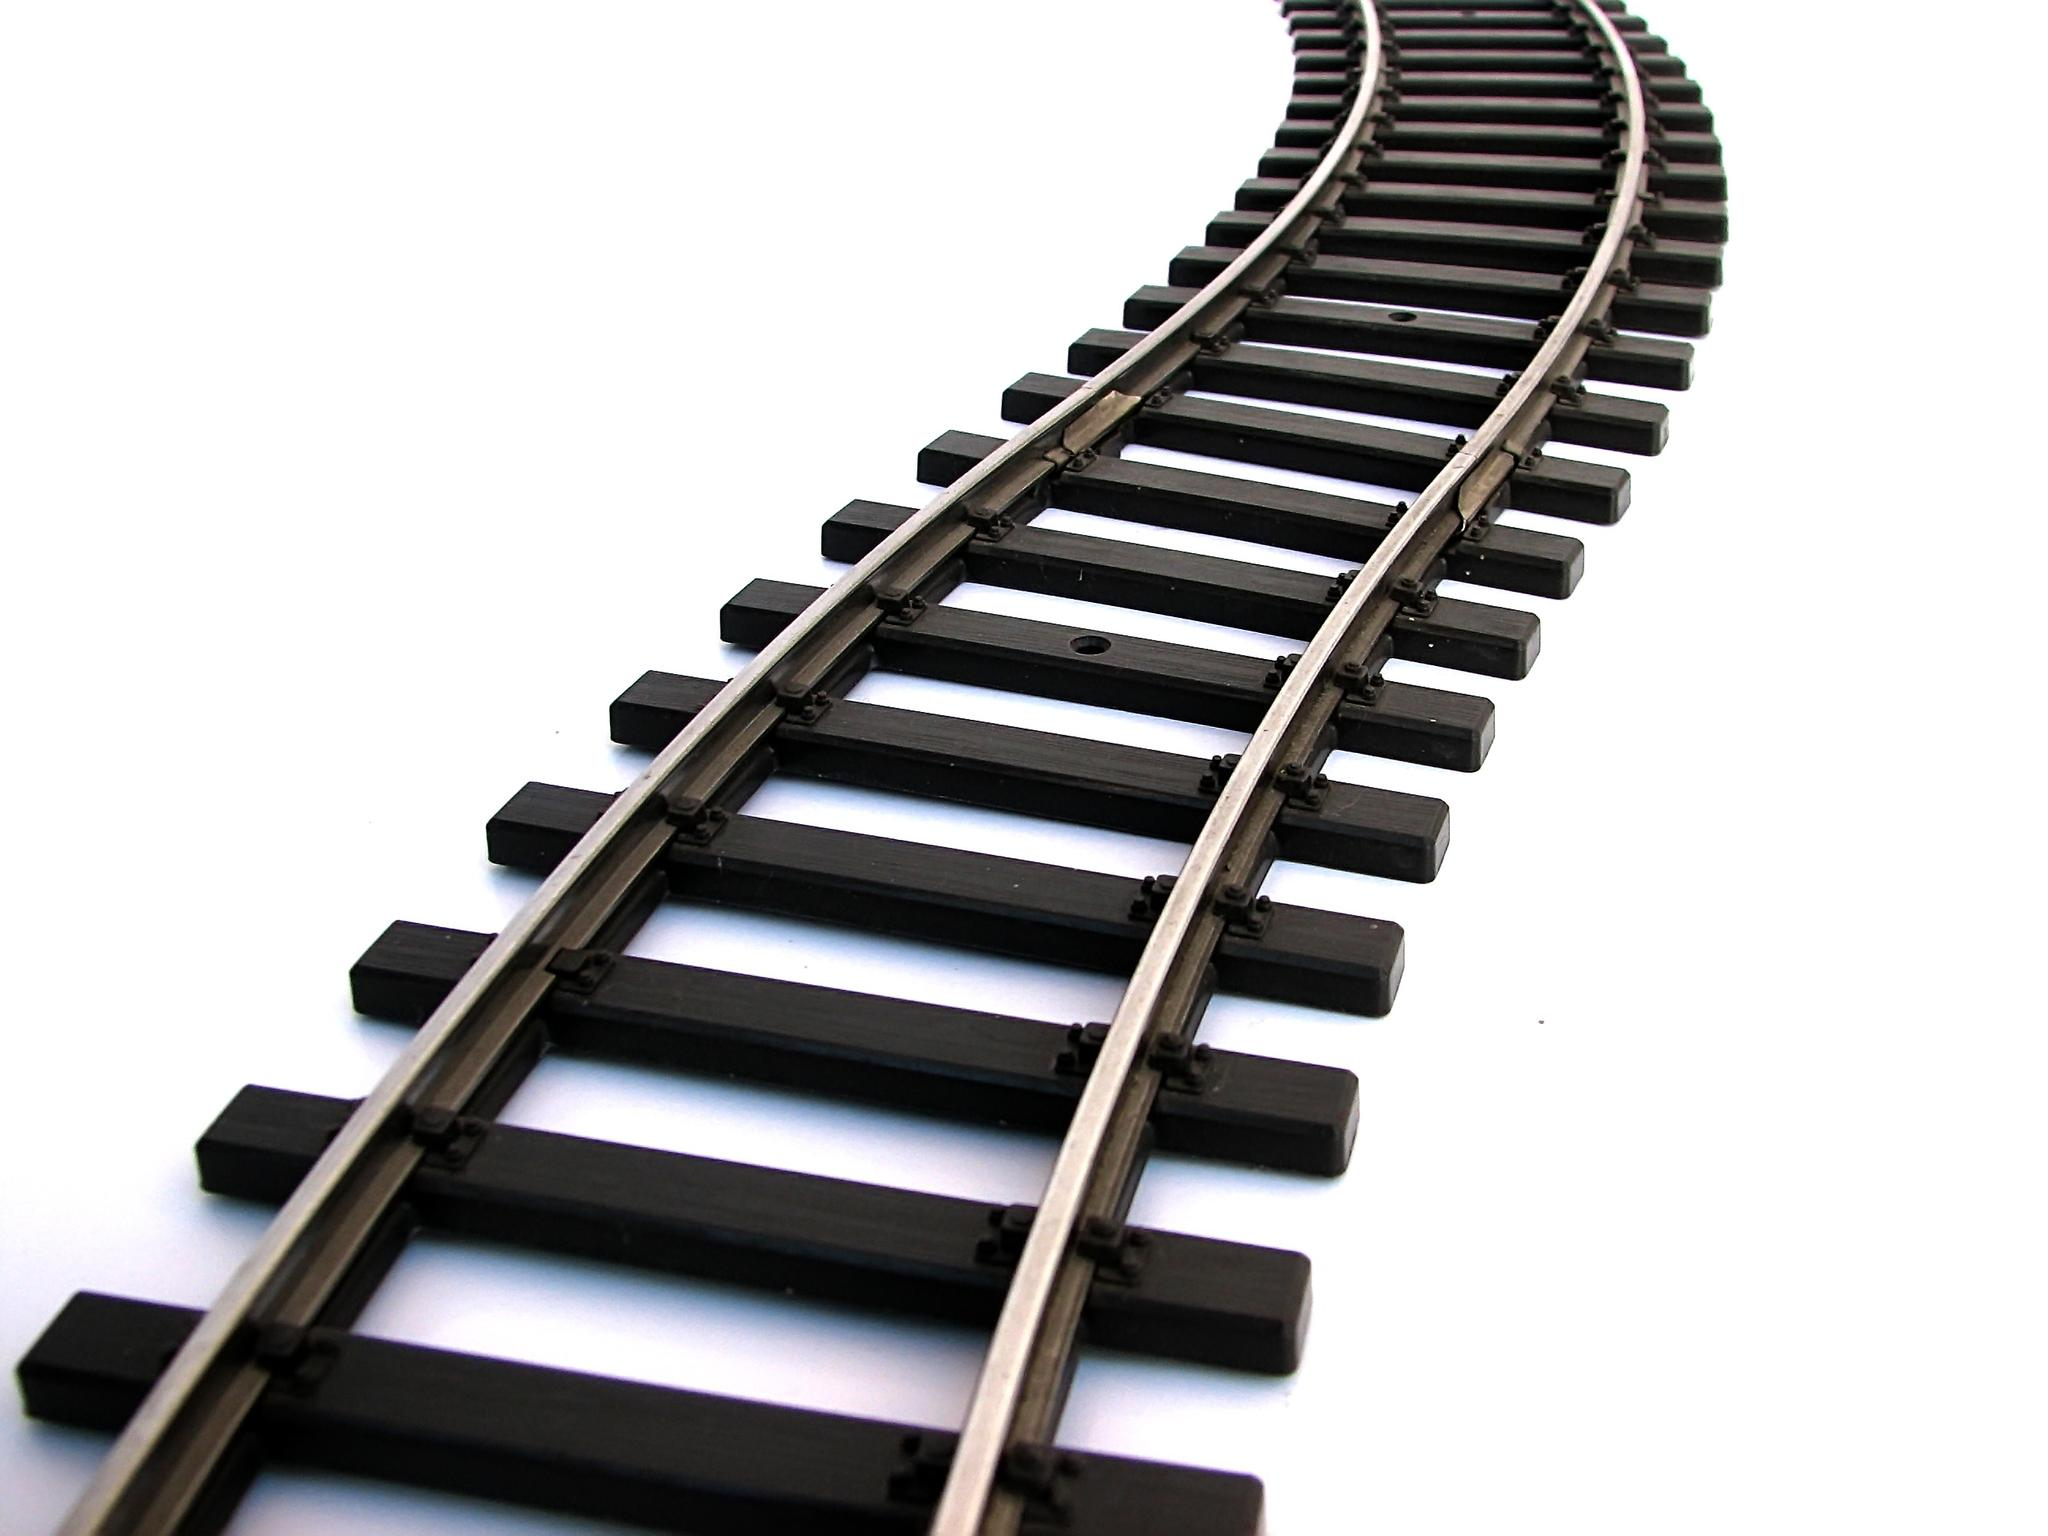 Train track clipart images jpg library Free Train Track Cliparts, Download Free Clip Art, Free Clip Art on ... jpg library